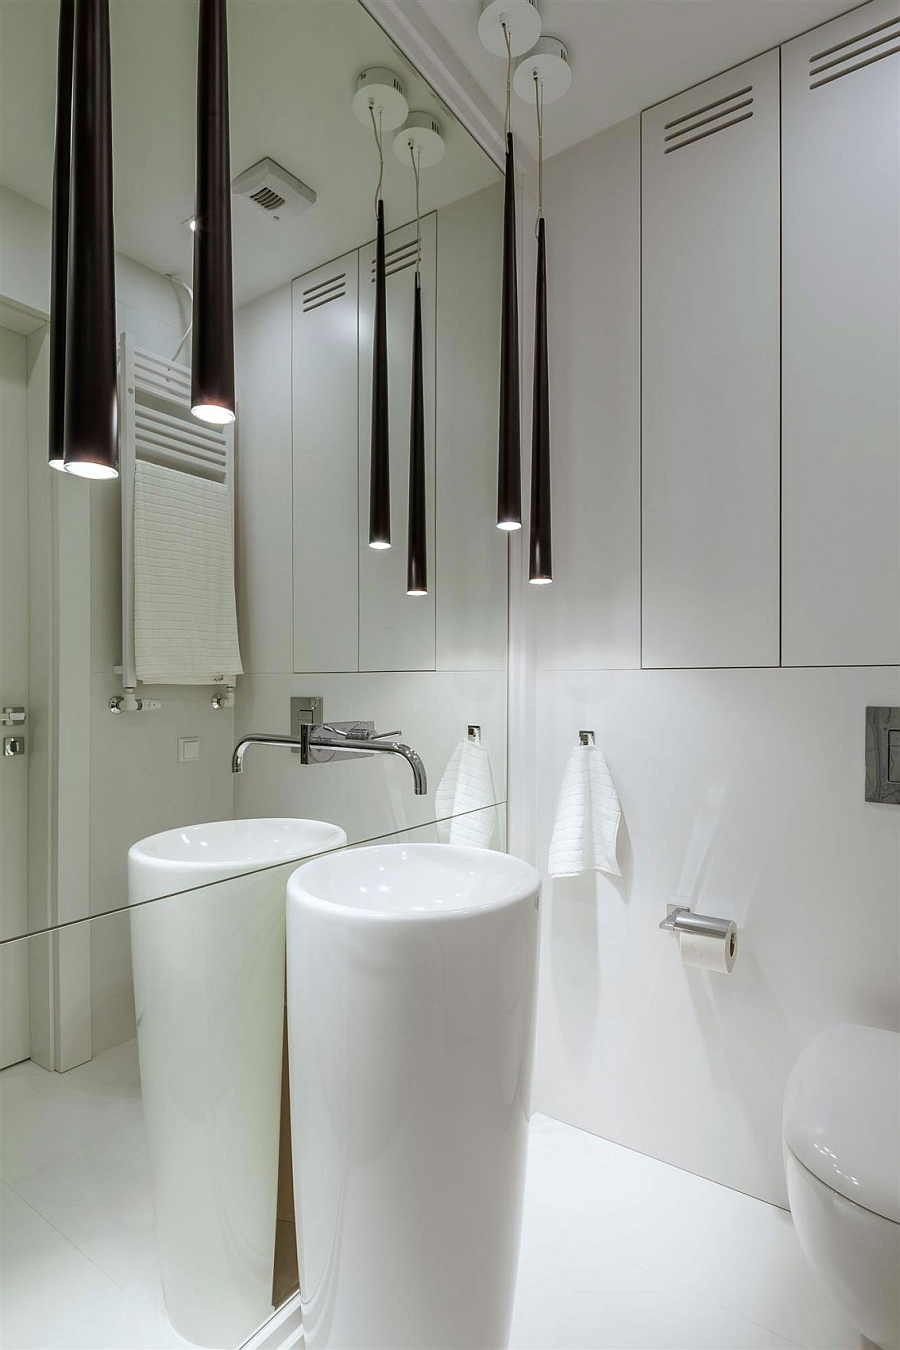 Sleek and stylish bathroom lighting in black